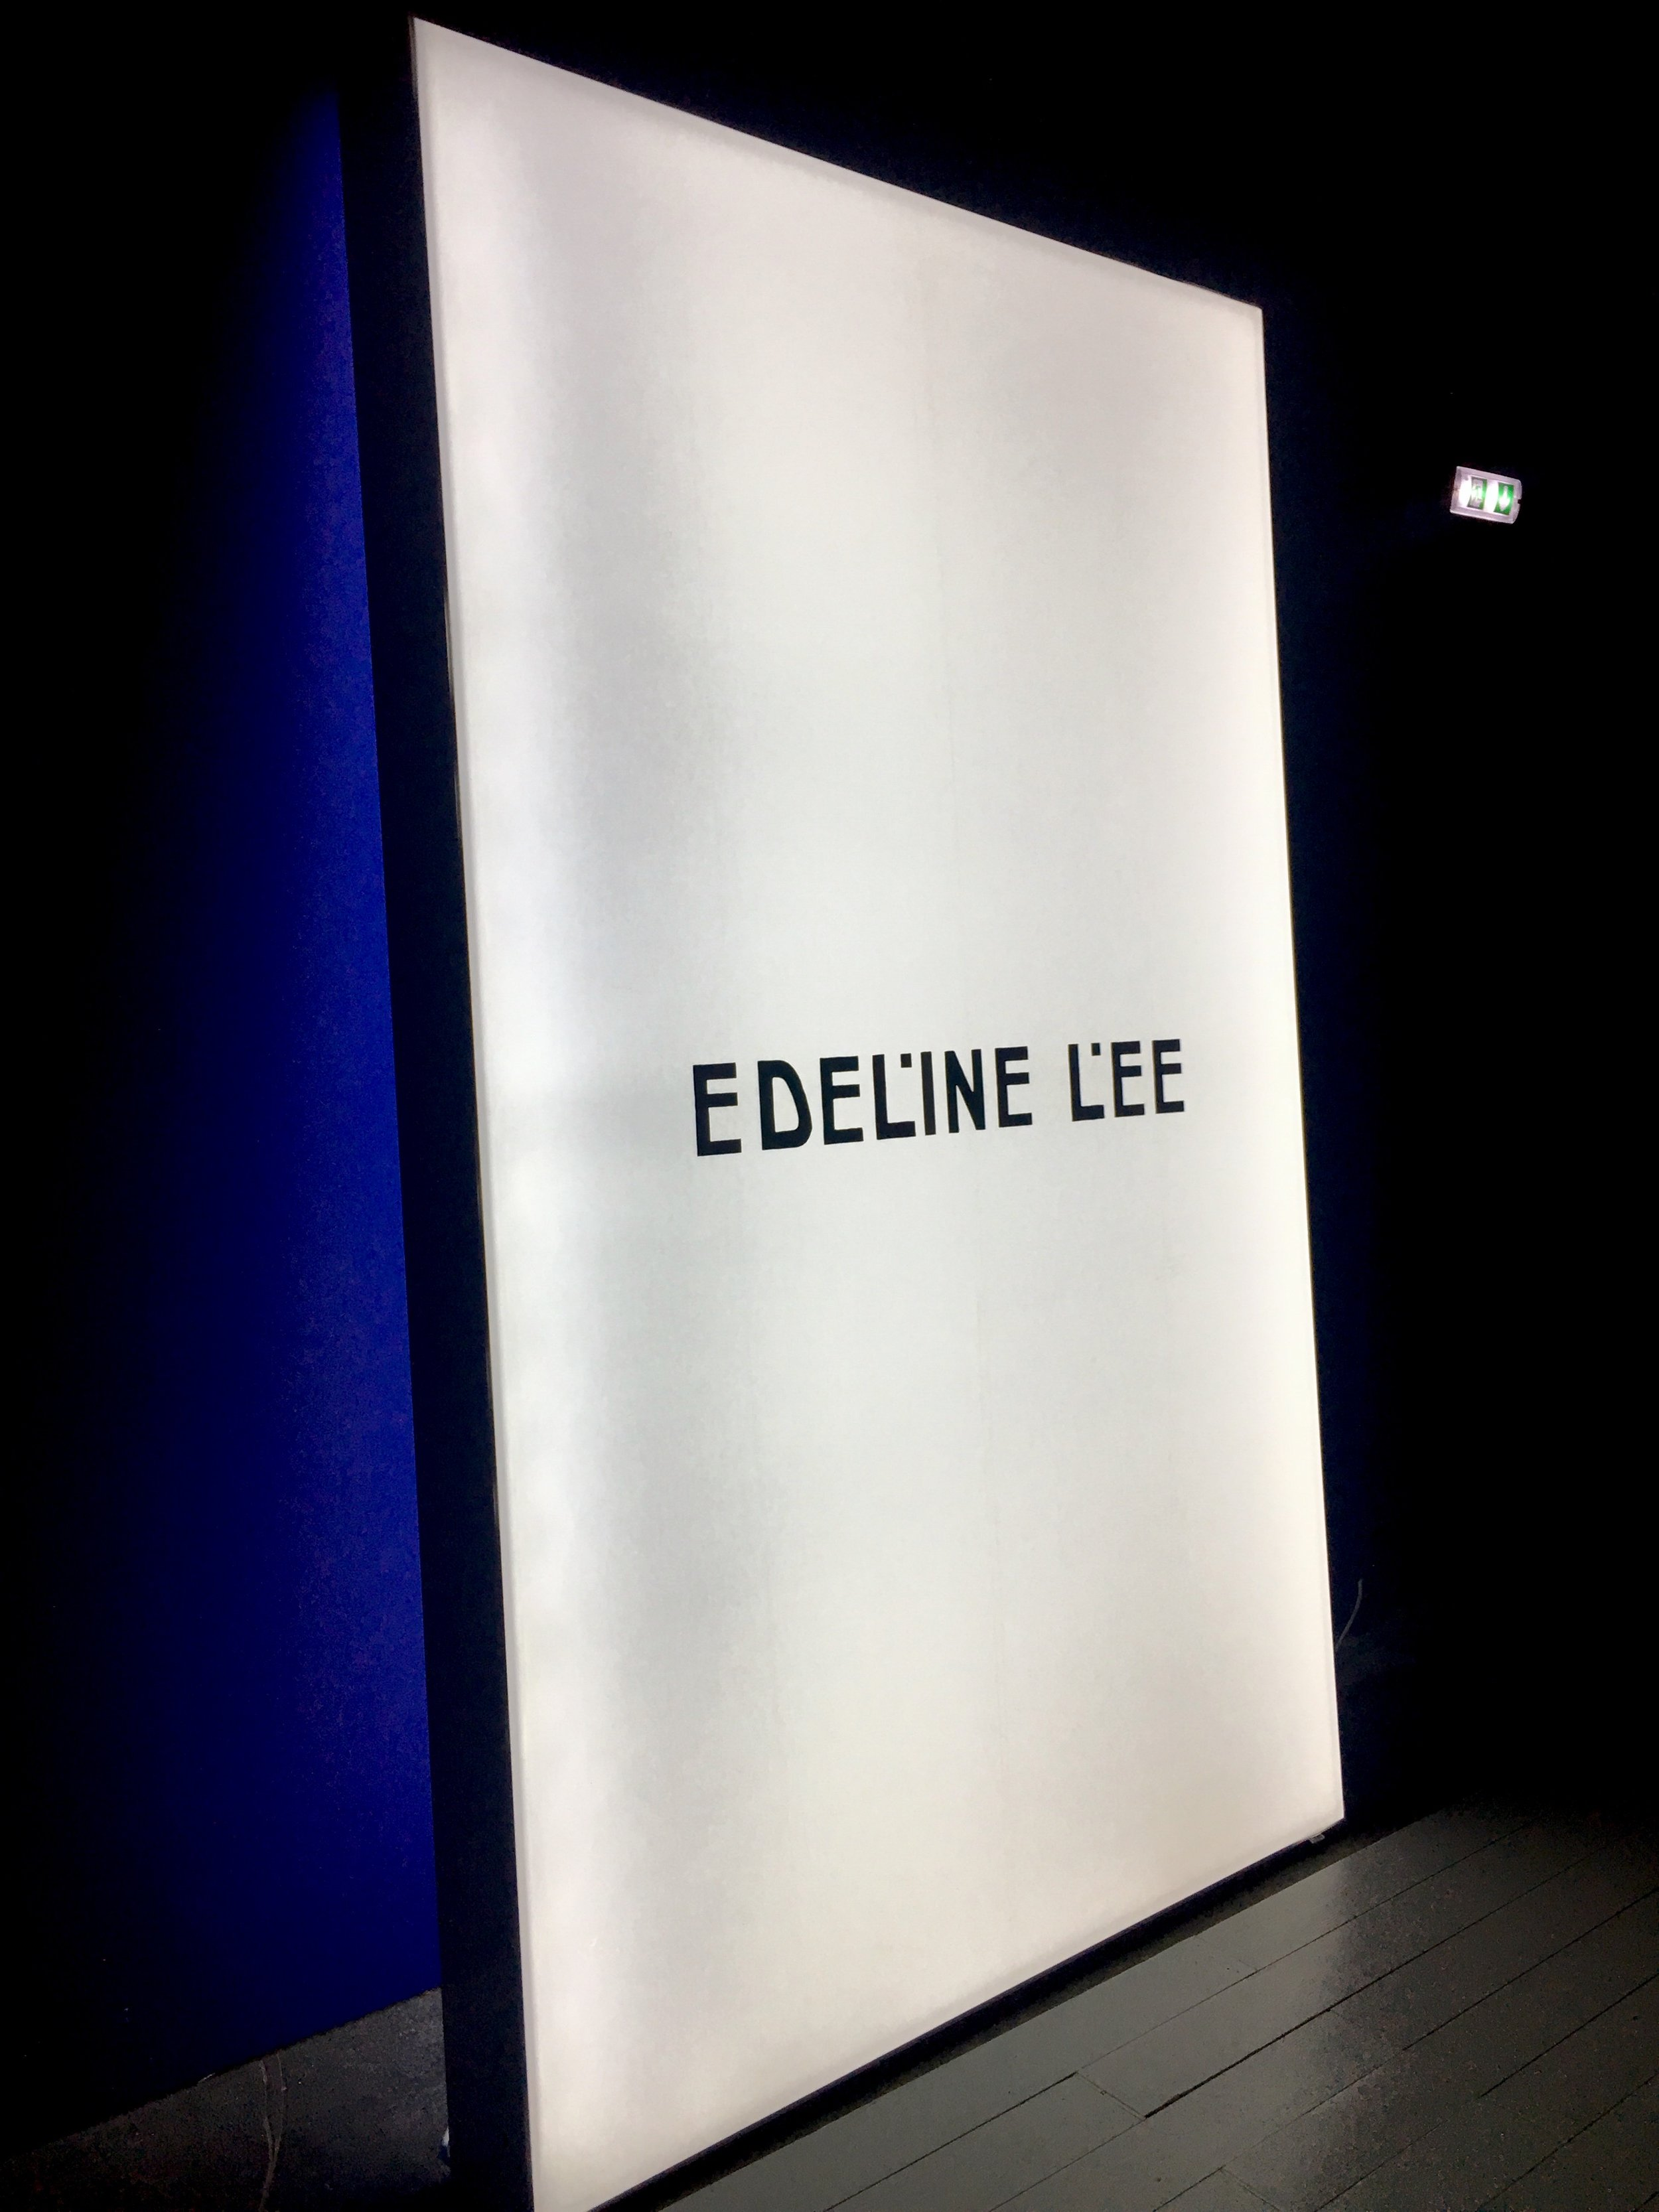 Edeline Lee - And so to 180 The Strand, the beating heart of Fashion Week. Here, Edeline Lee was showcasing her SS19 collection to a jaunty soundtrack that spanned the decades and spawned the mood! Dancers, not models, wore a beautiful mix of scarlet, emerald and toffee-coloured dresses, skirts and tops, peppered with bright white trims, ruffle details and spaghetti straps. A body-flattering mix that was utterly wearable.Being a dance extravaganza had it's challenges - with the low light and constant movement, many of my shots were blurred and unusable, to say nothing of the difficulty of getting a clear view! To that end I've scanned my videos to create stills of every look, every jump, gesture and backflip! See the collage below which I hope is as different as the show itself.